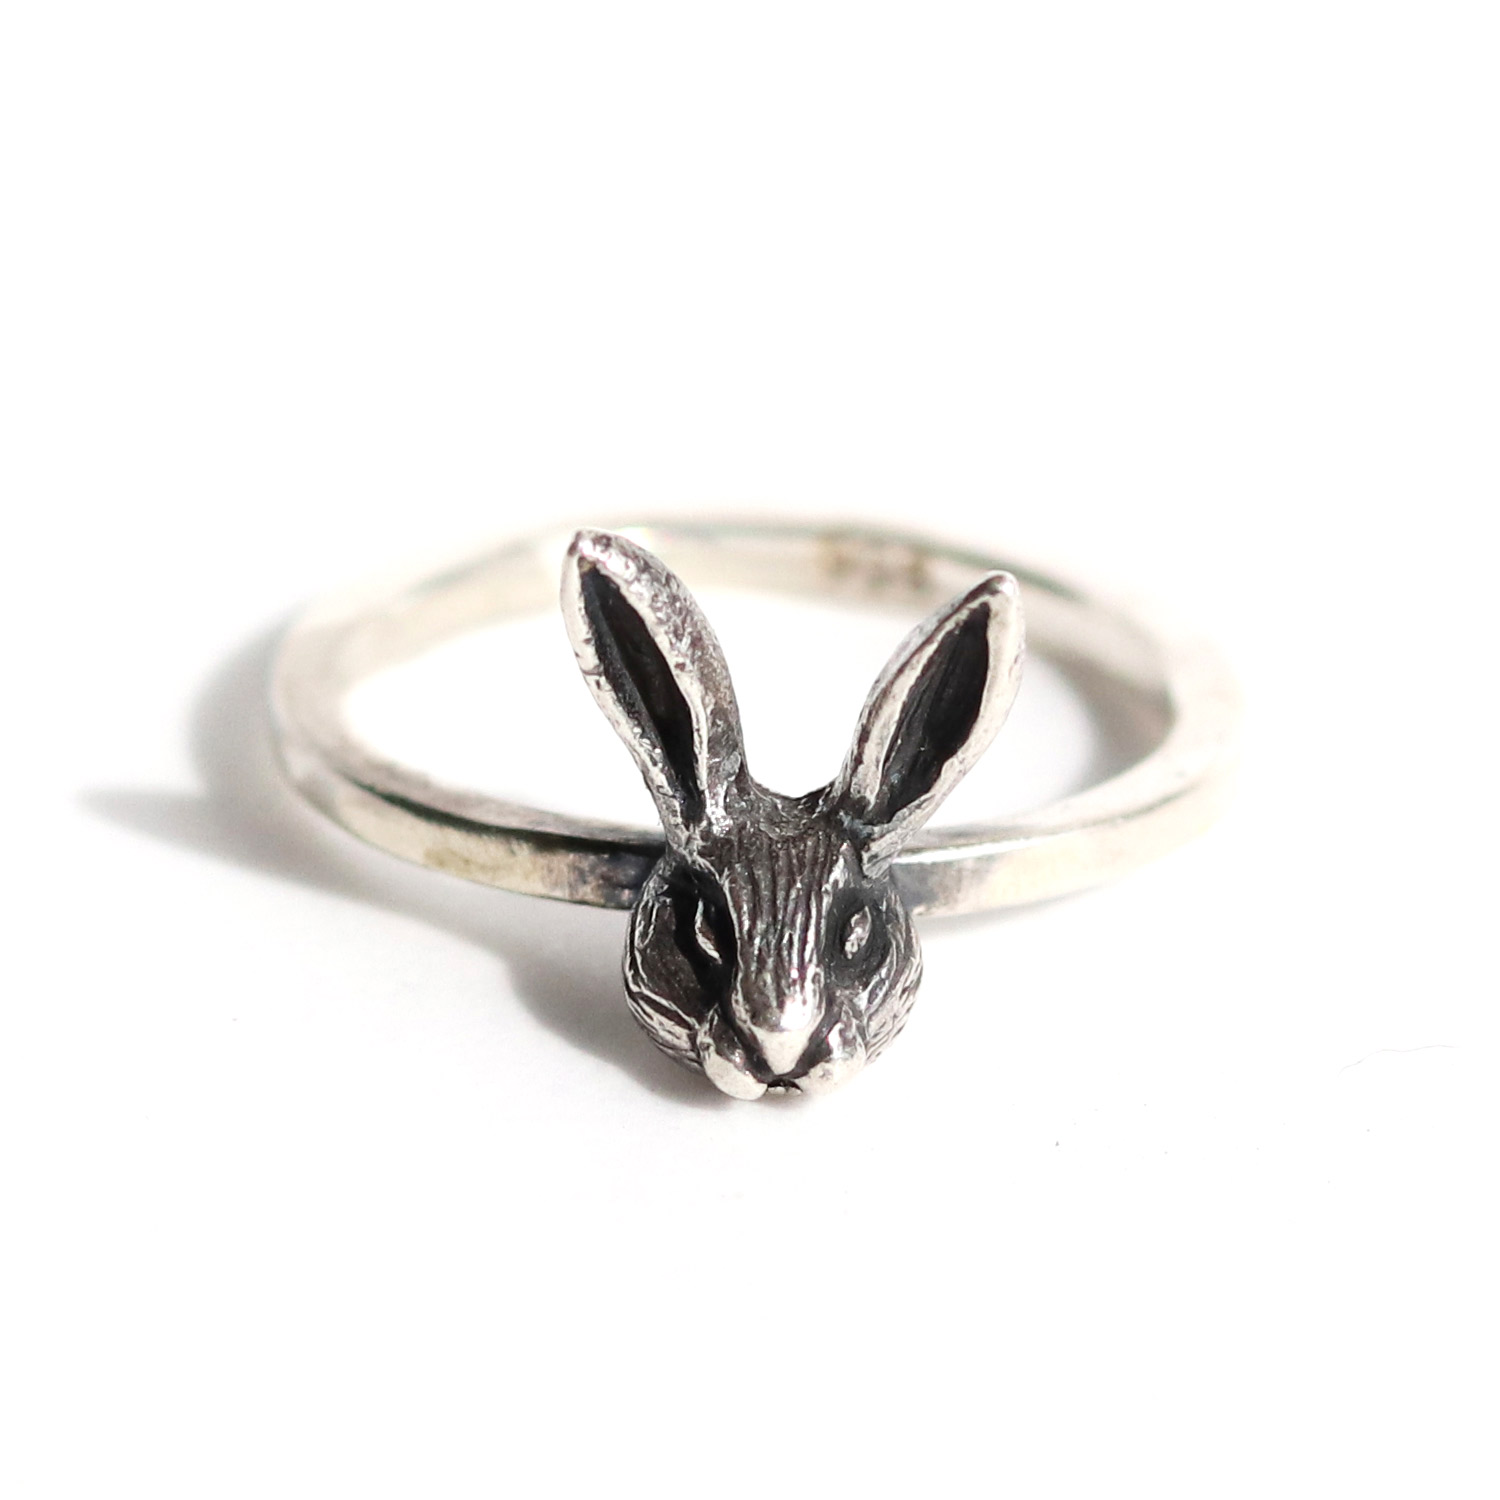 Fudge the rabbit is inspired by my own pet bunny Fudge. The original was painstakingly hand carved from wax to resemble Fudge as closely as possible, then cast into sterling silver.